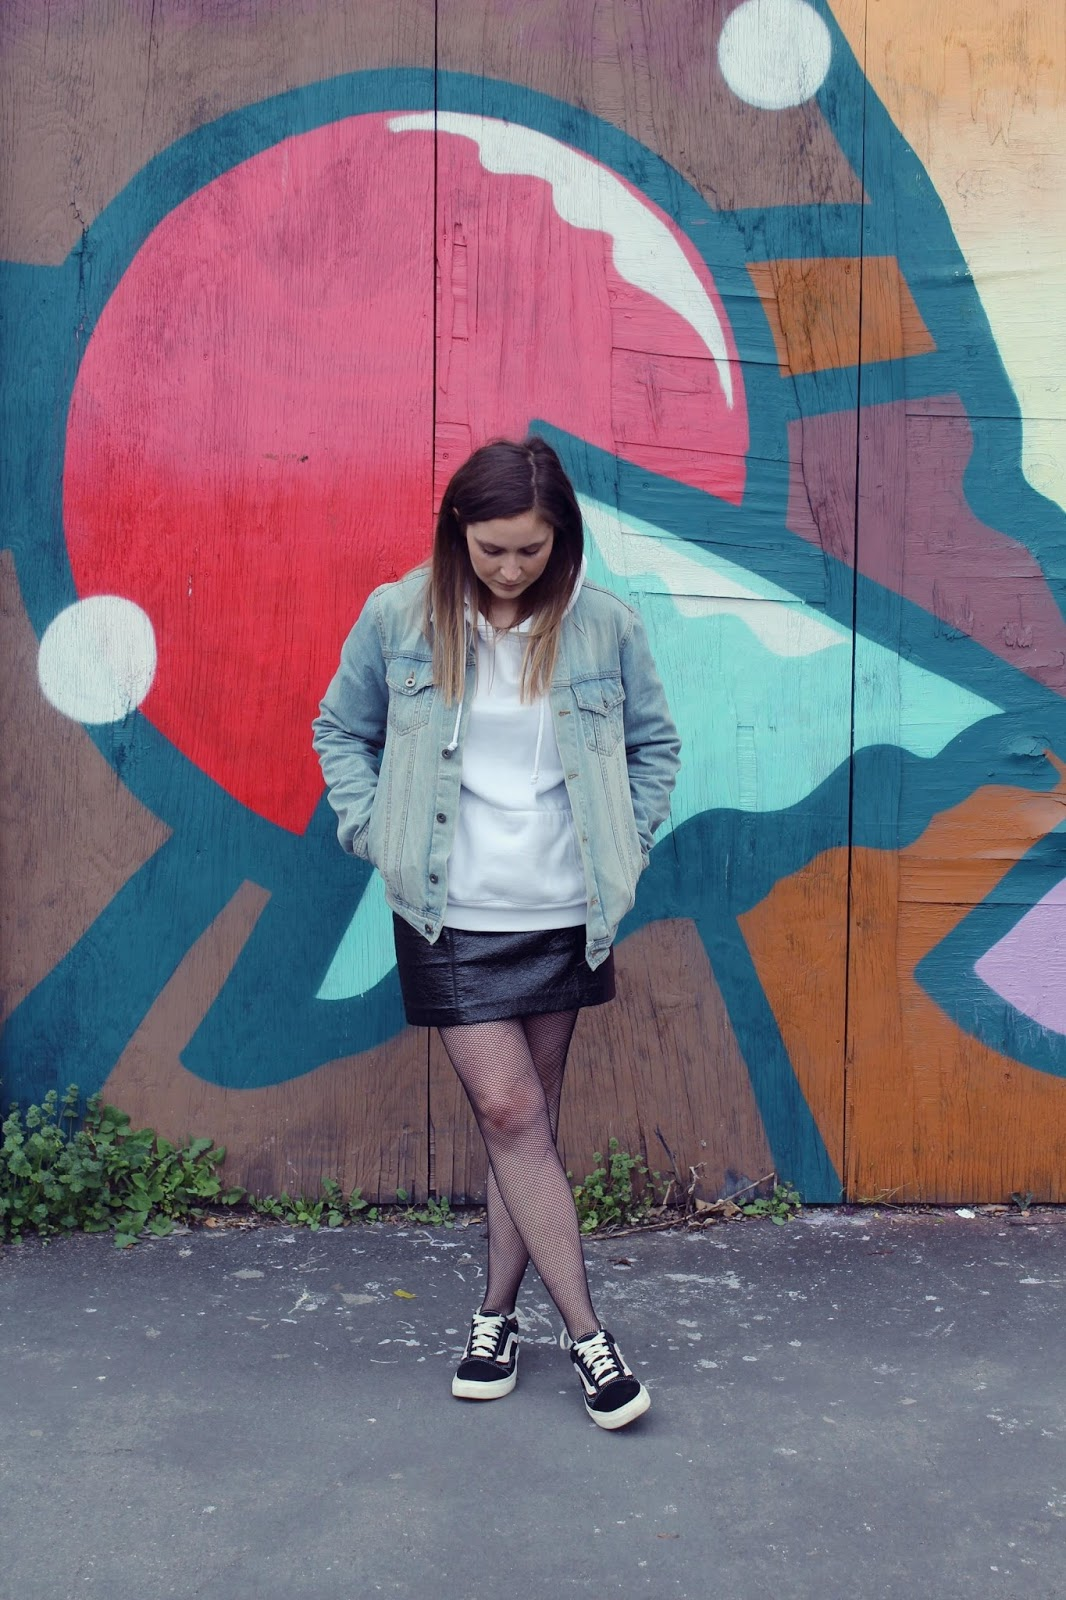 Topman denim jacket, Boohoo hoody, H&M skirt, Vans, Boohoo tights